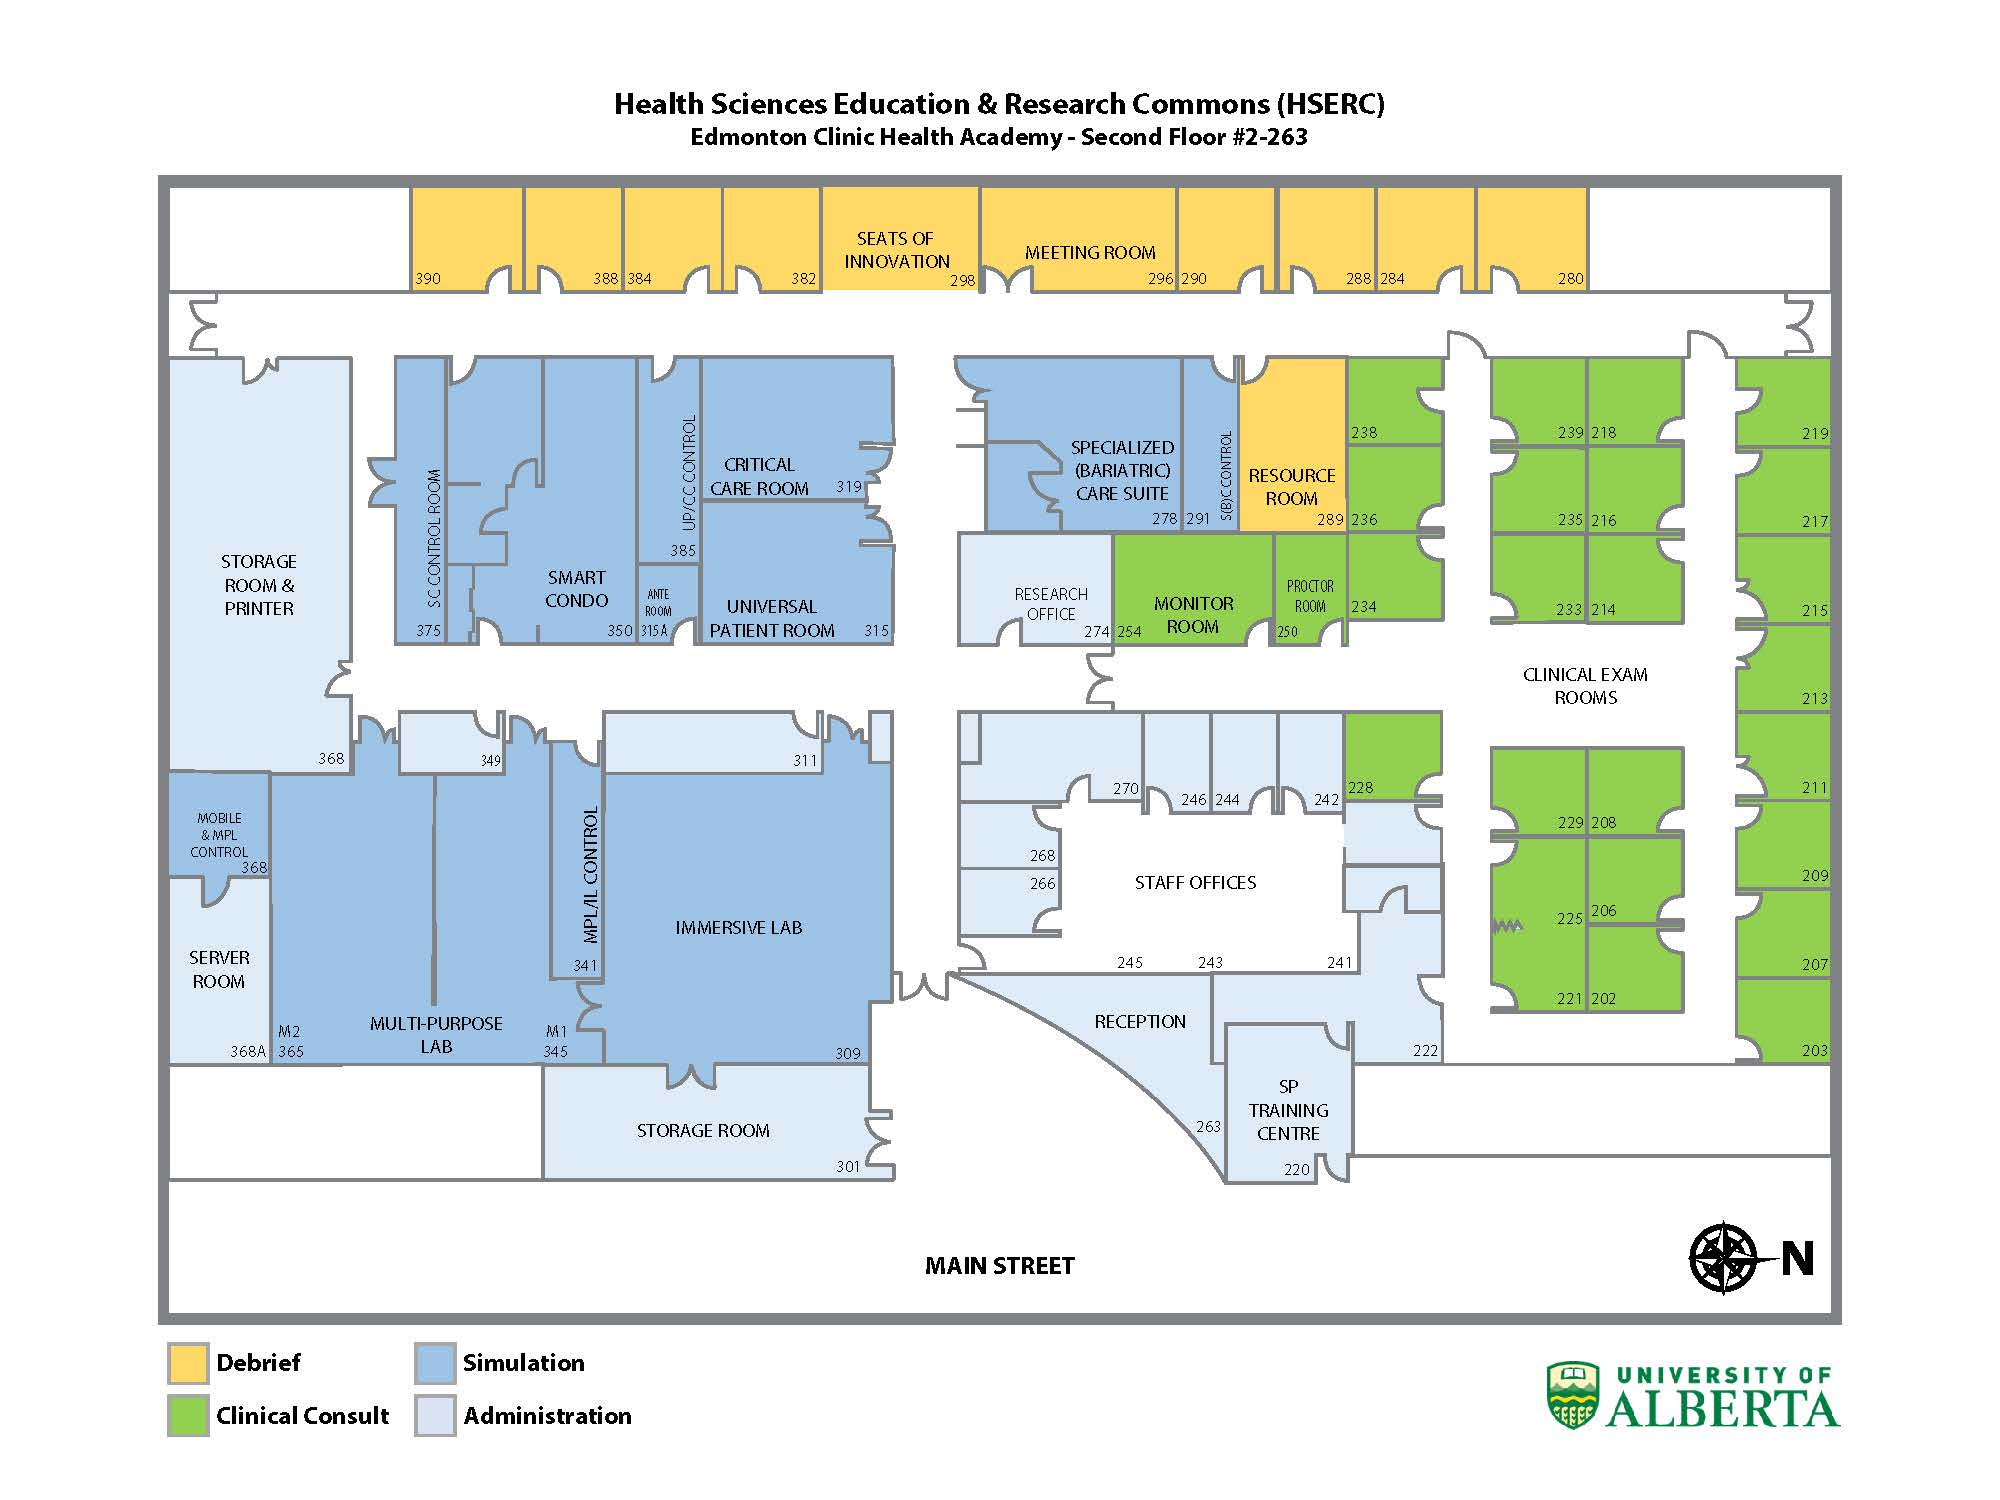 Floor plan of all of HSERC spaces